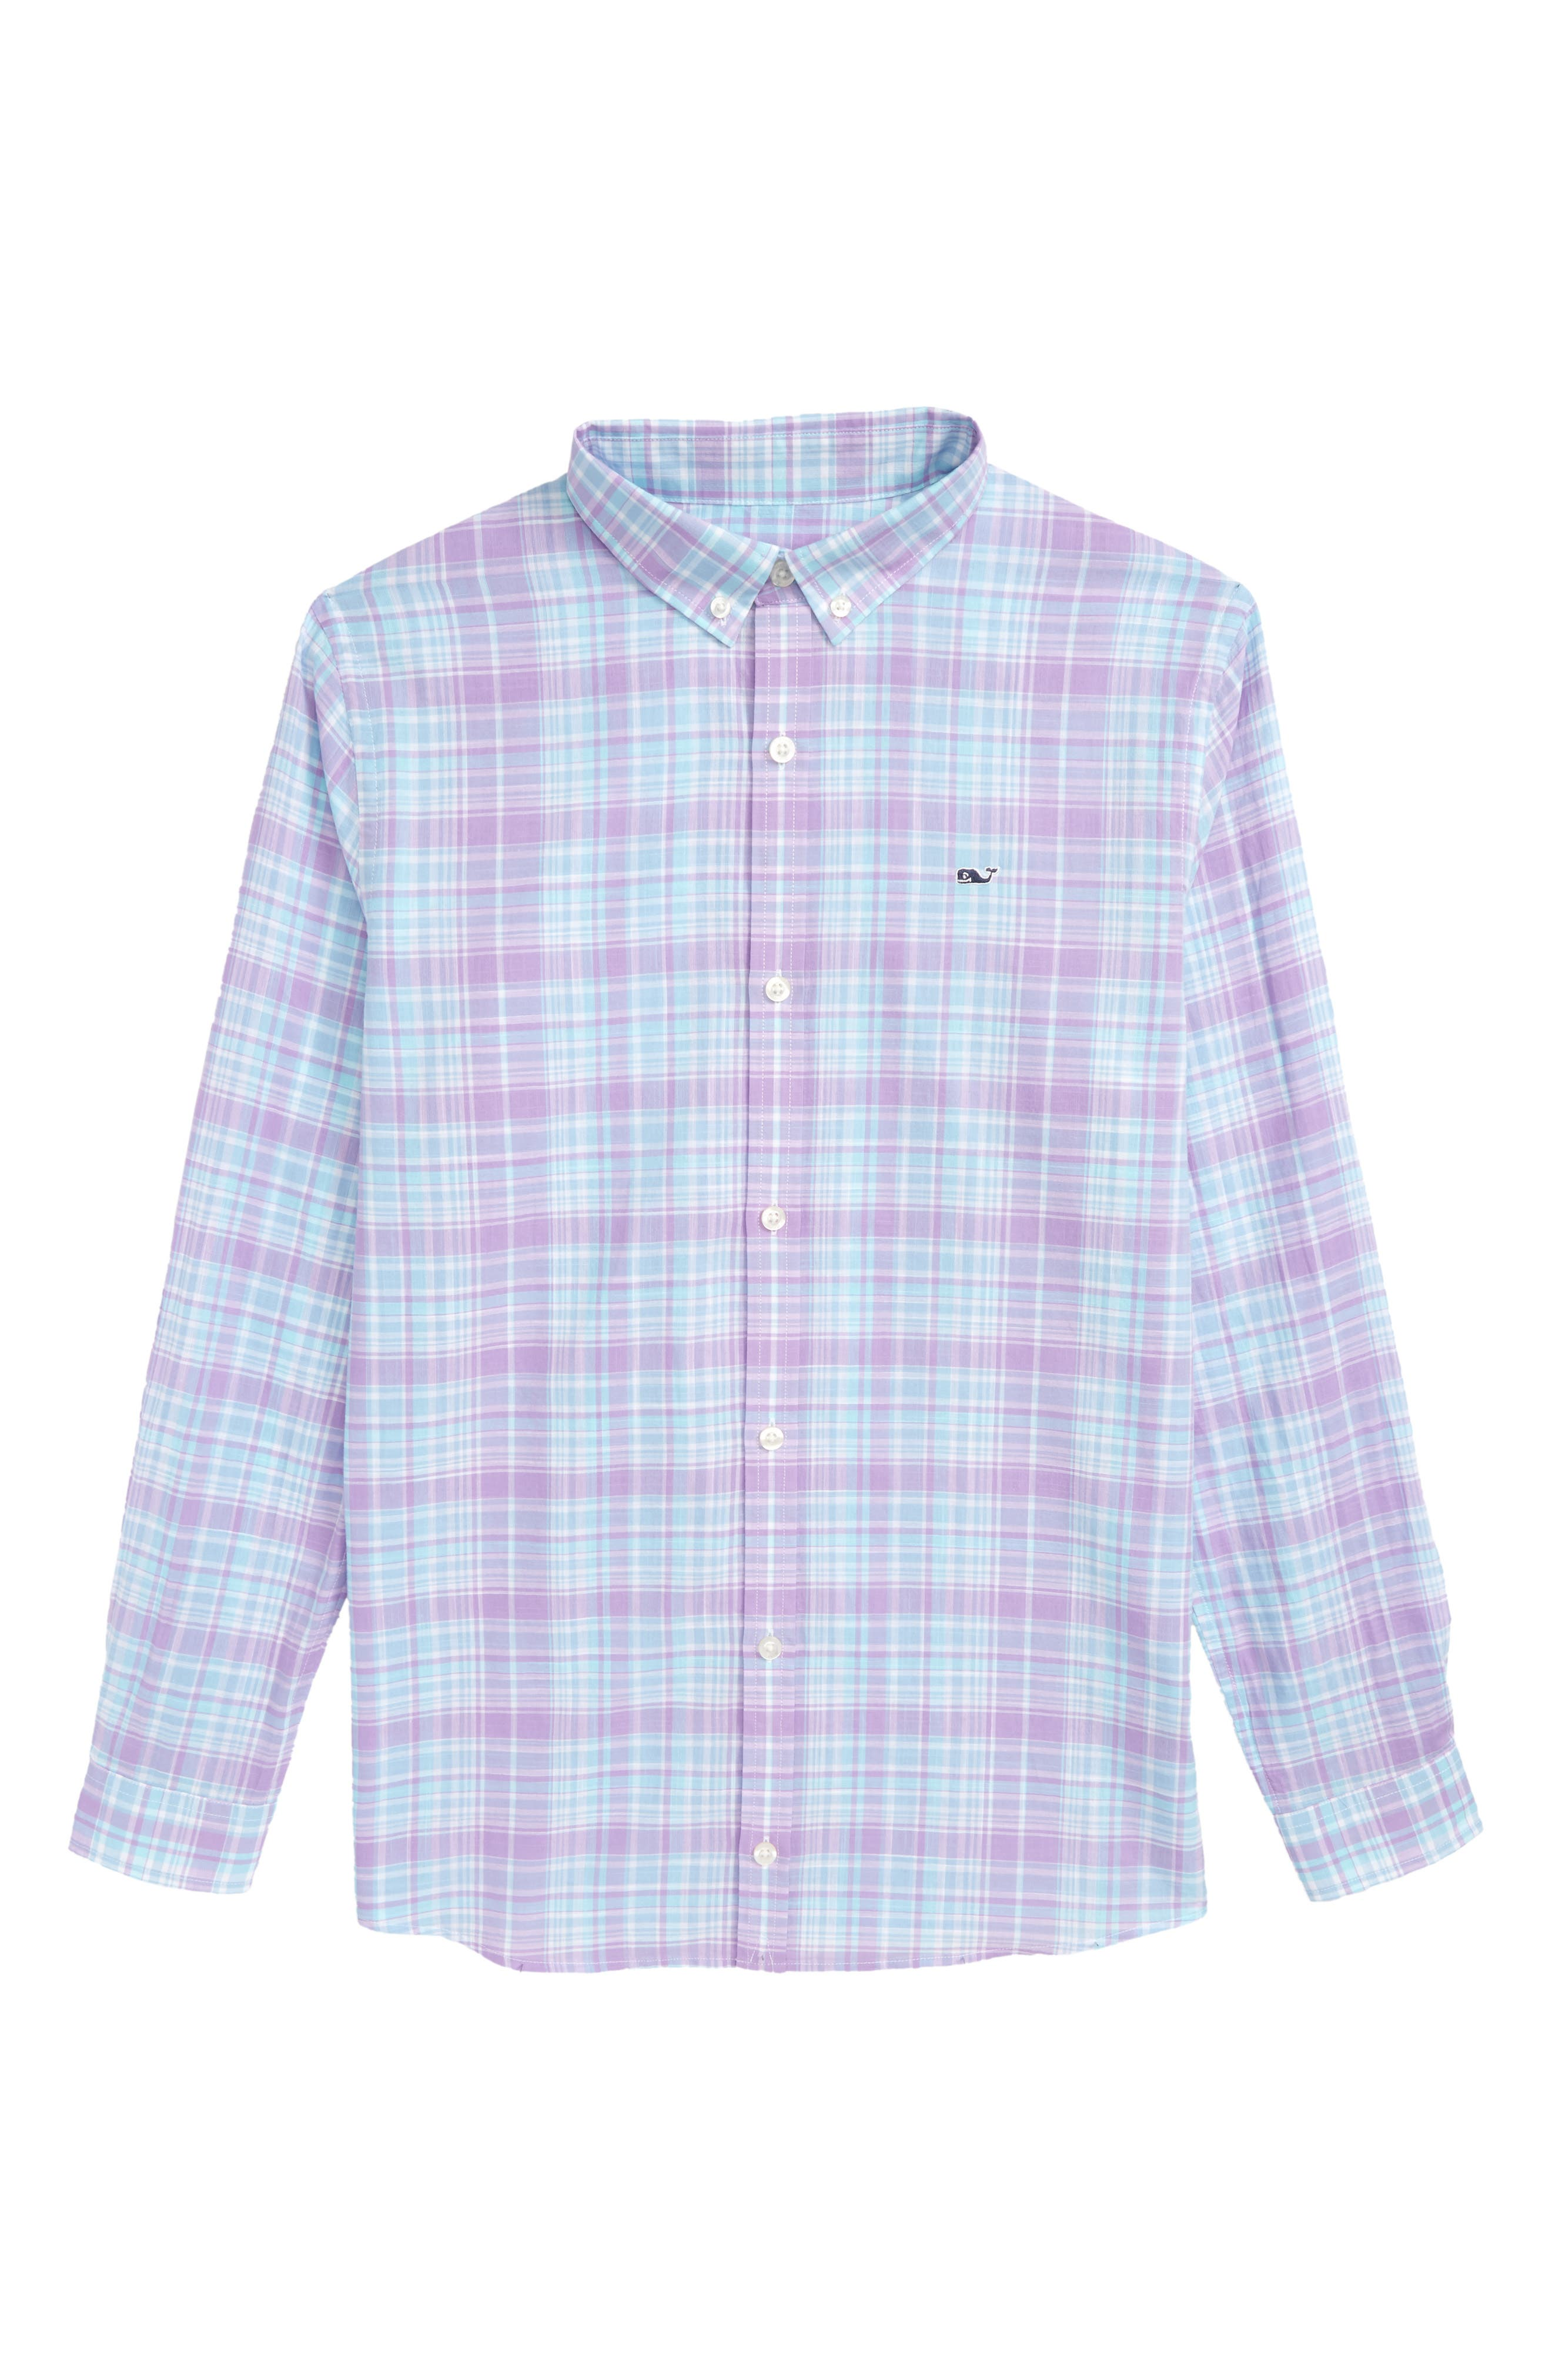 New Prov Beach Plaid Woven Shirt,                             Main thumbnail 1, color,                             Sea Urchin